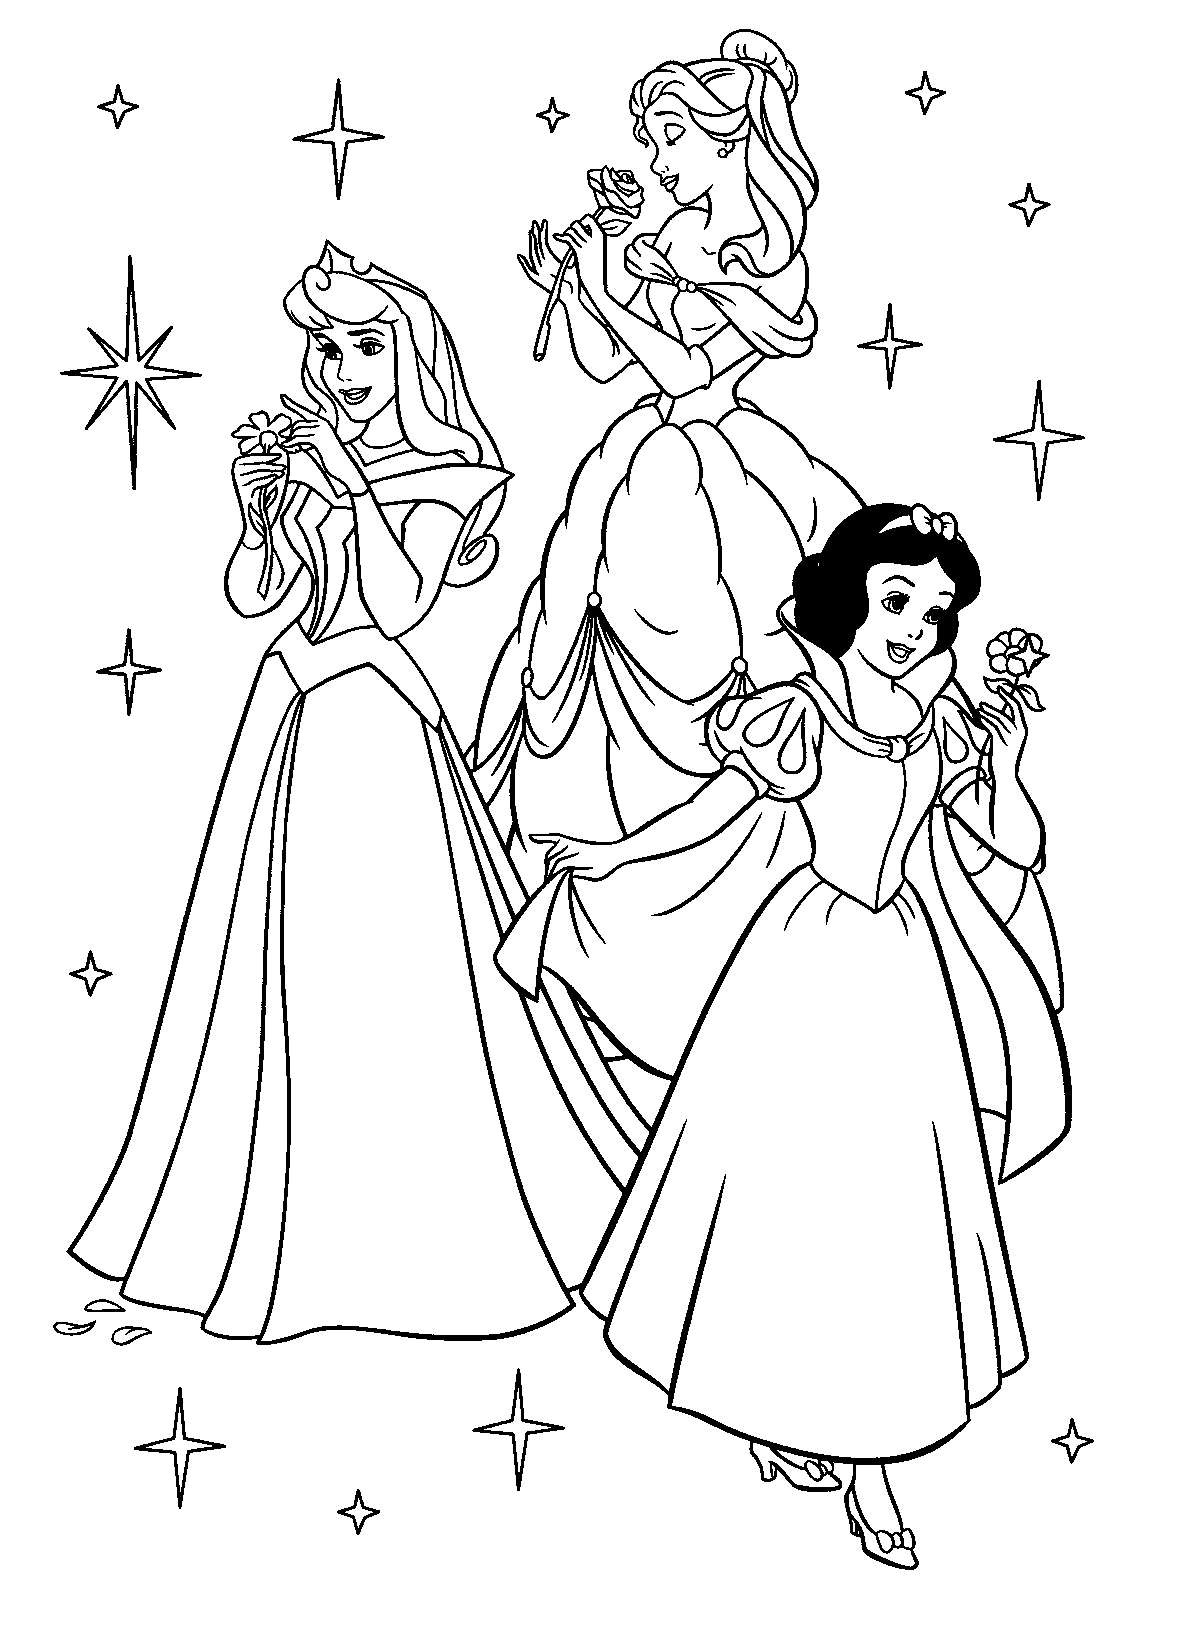 Free Printable Coloring Pages Disney Princess 2015 Princess Images Free Coloring Sheets